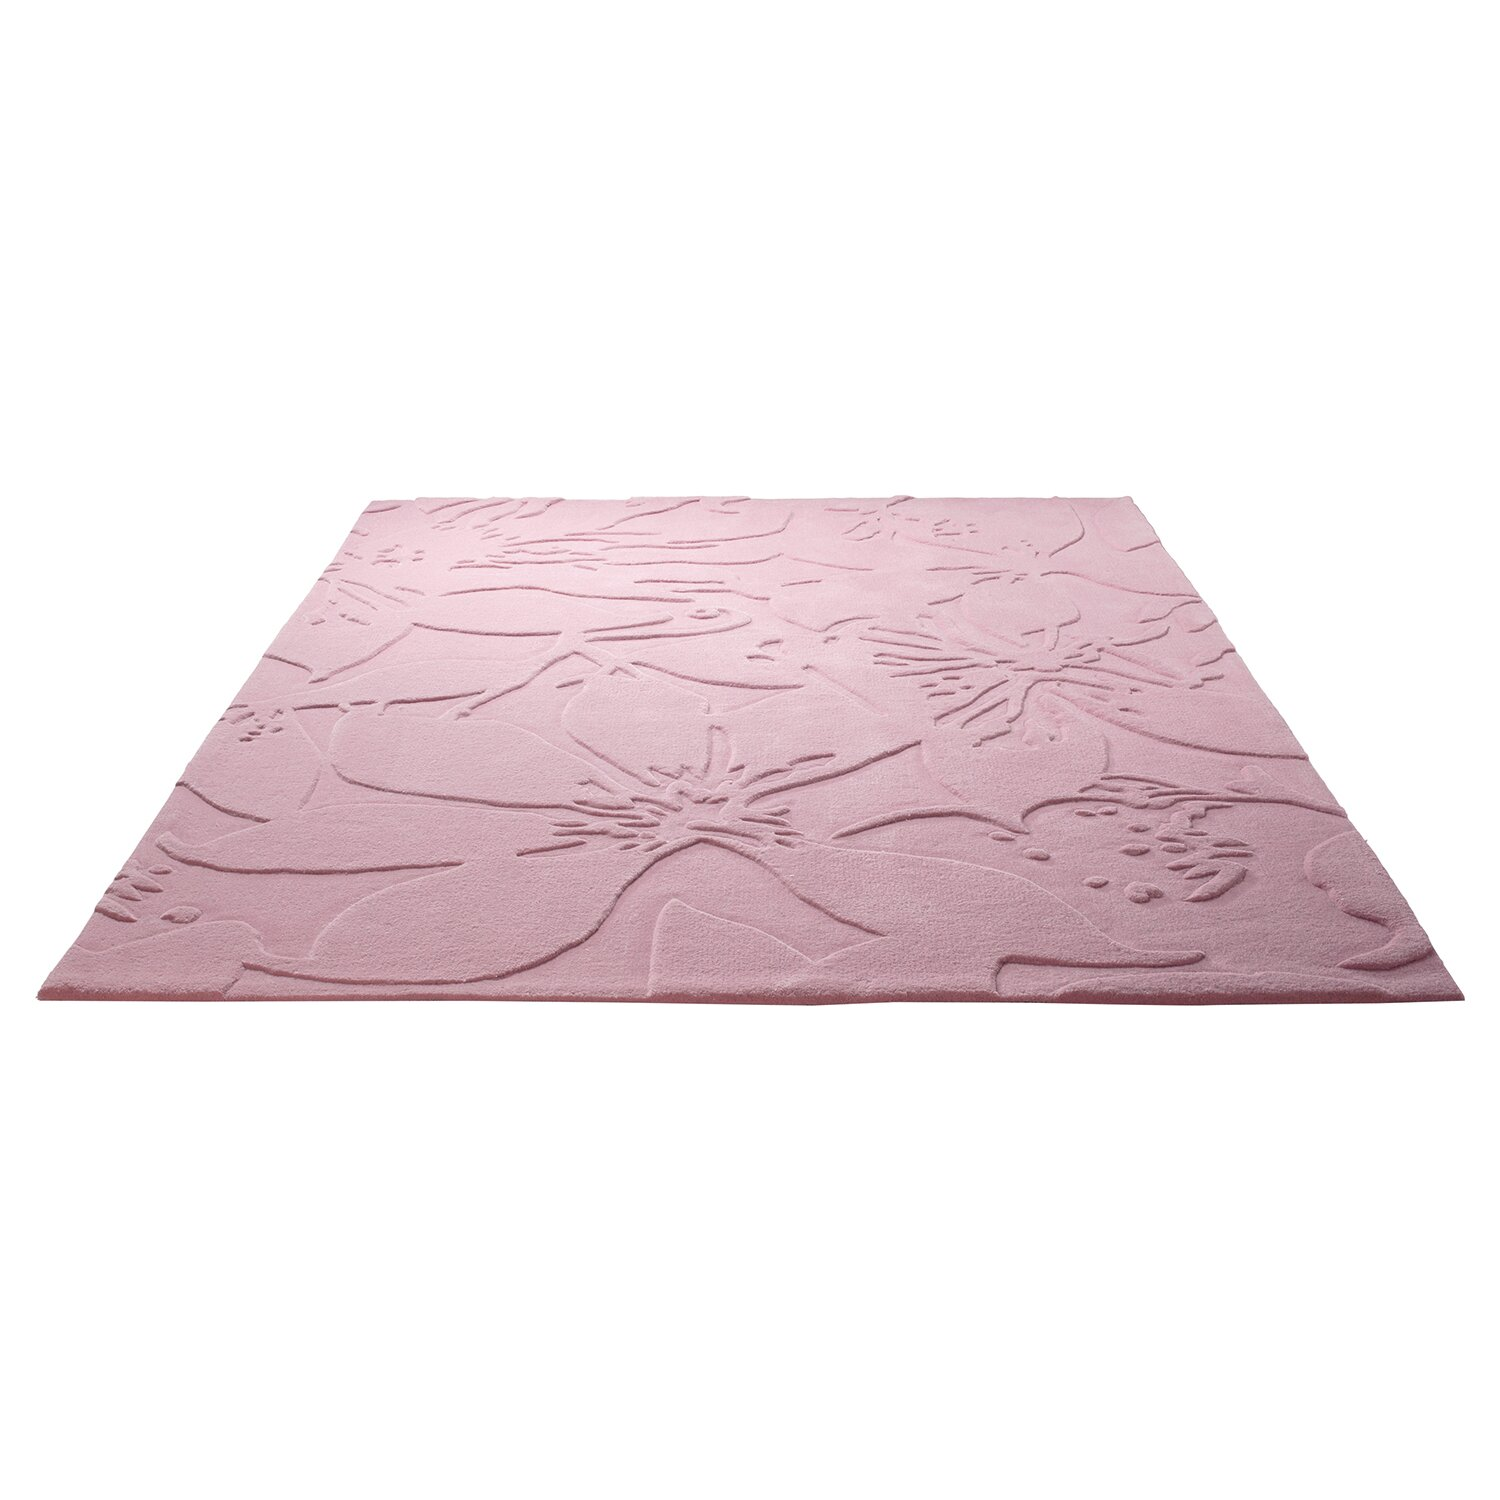 Esprit Lily Hand-Tufted Pink Area Rug & Reviews